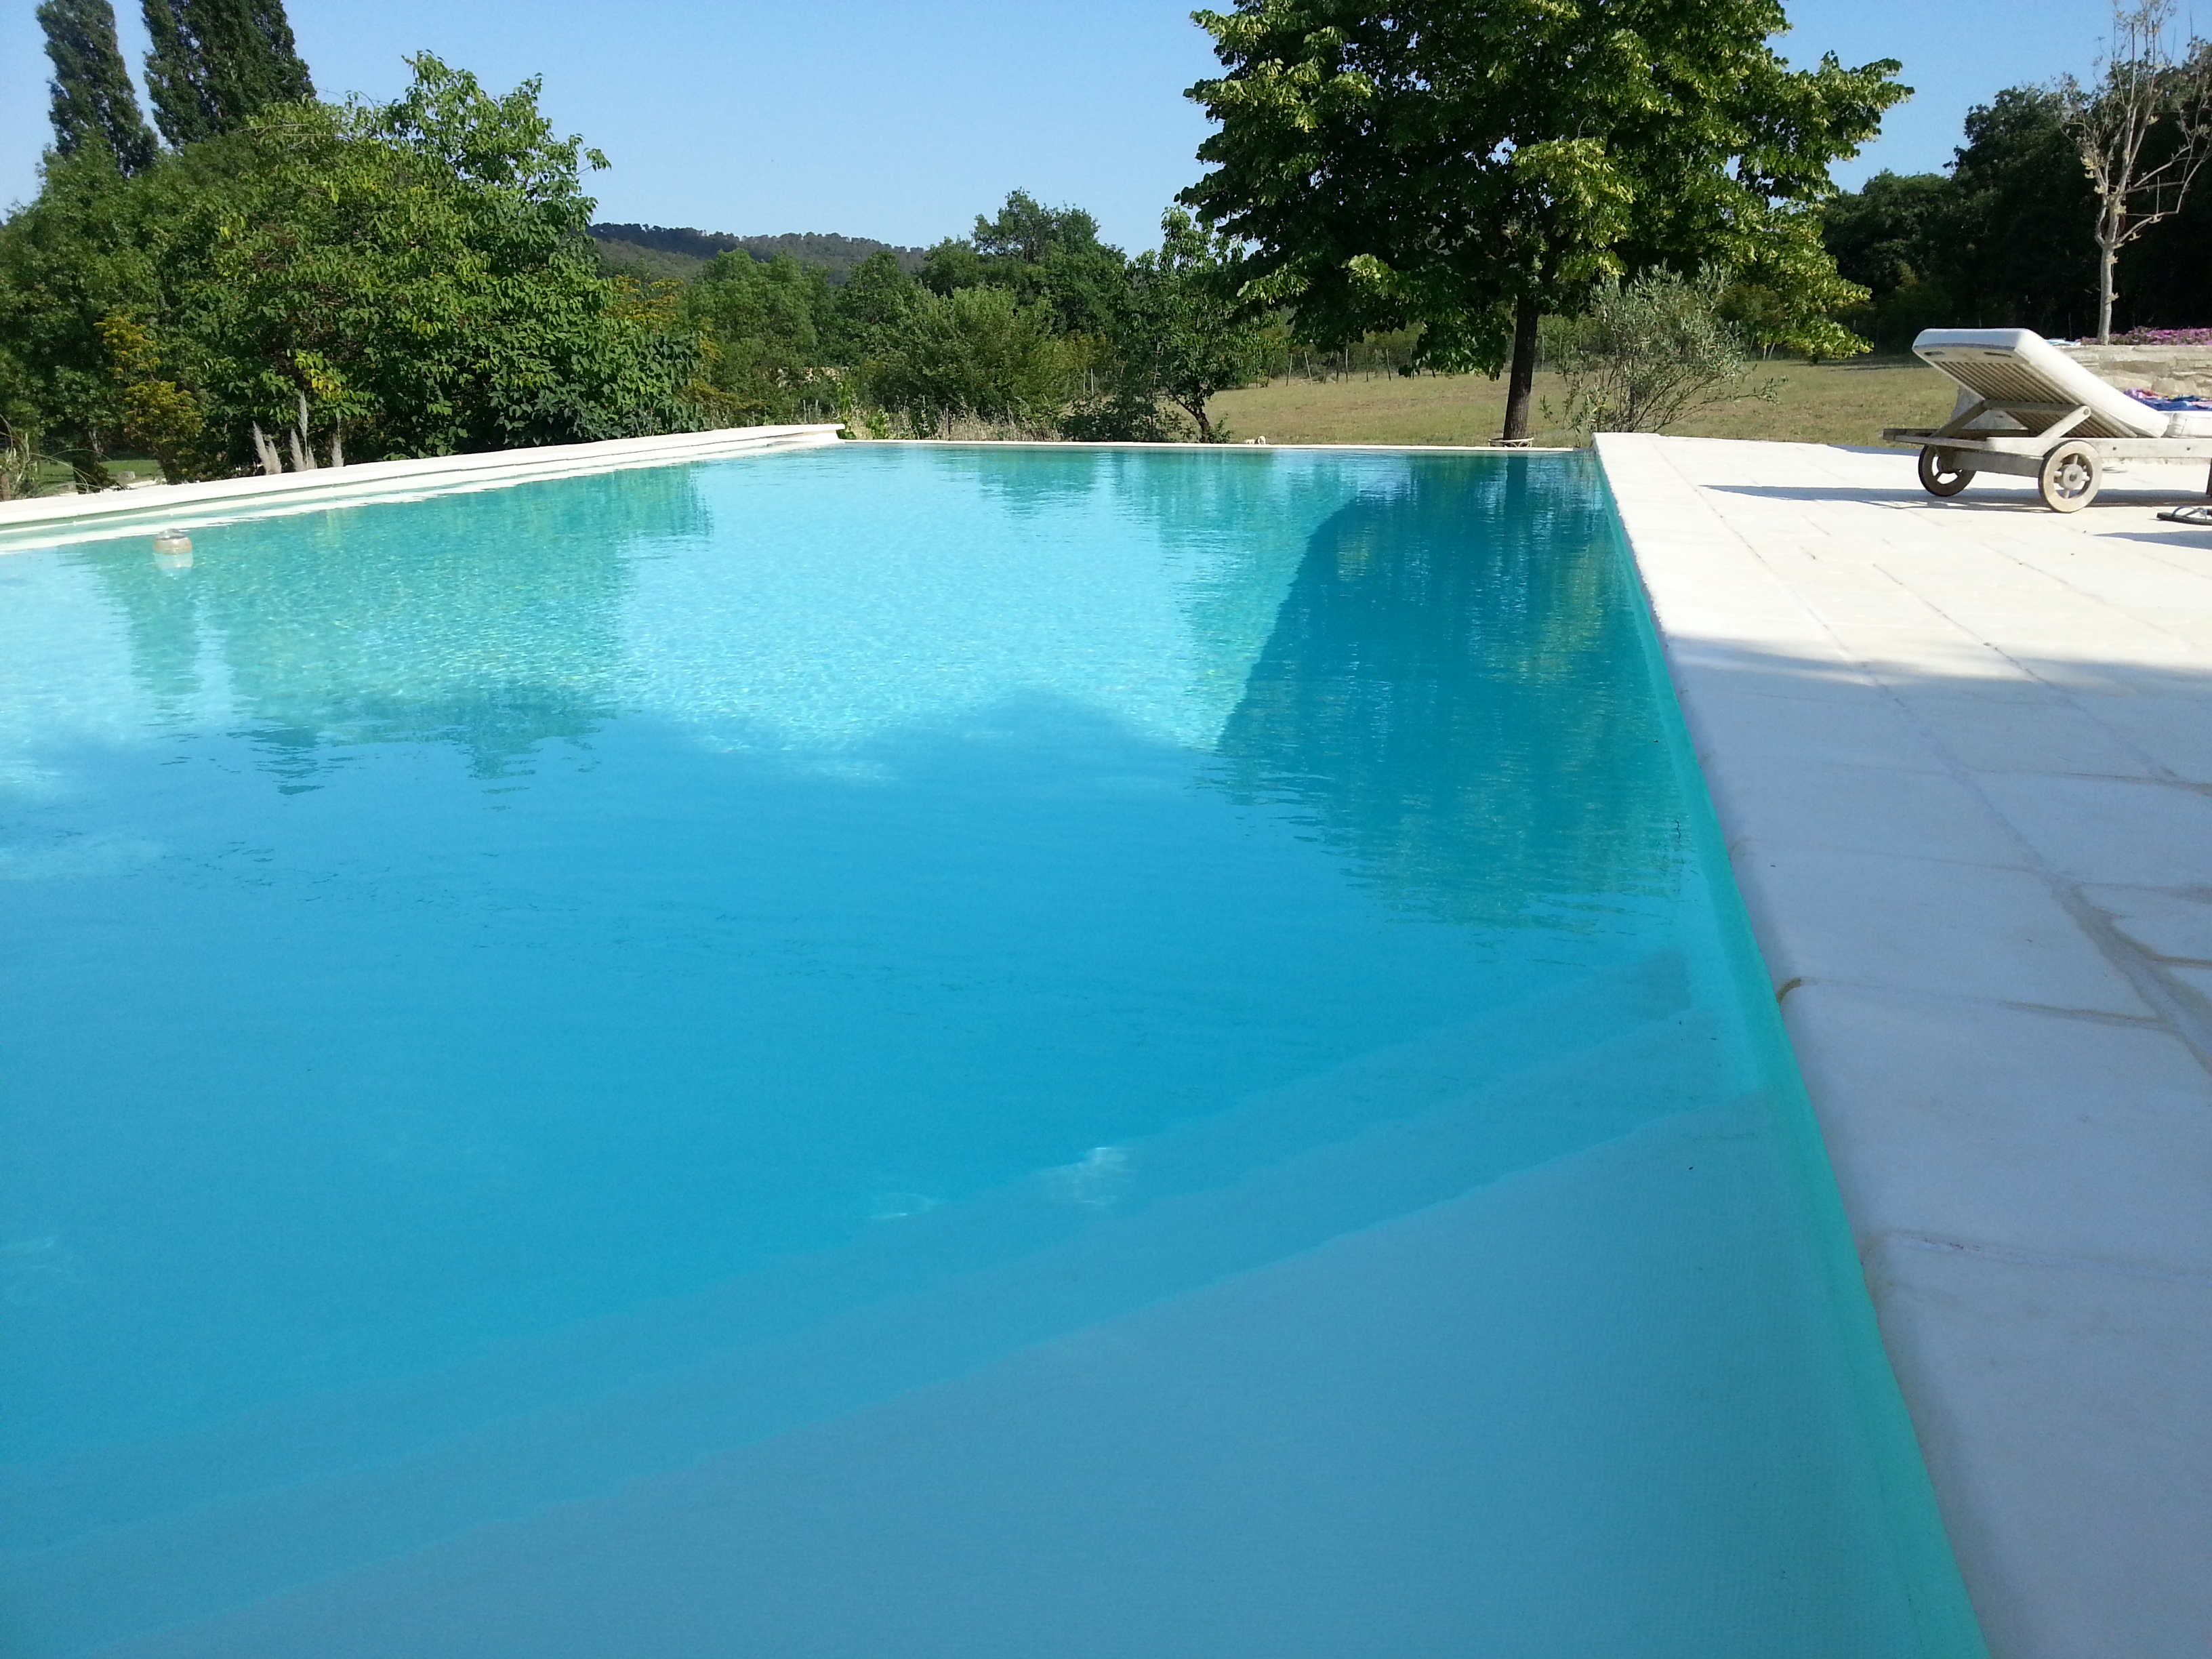 Piscine en kit hors sol photo piscine en kit hors sol pas for Piscine kit pas cher